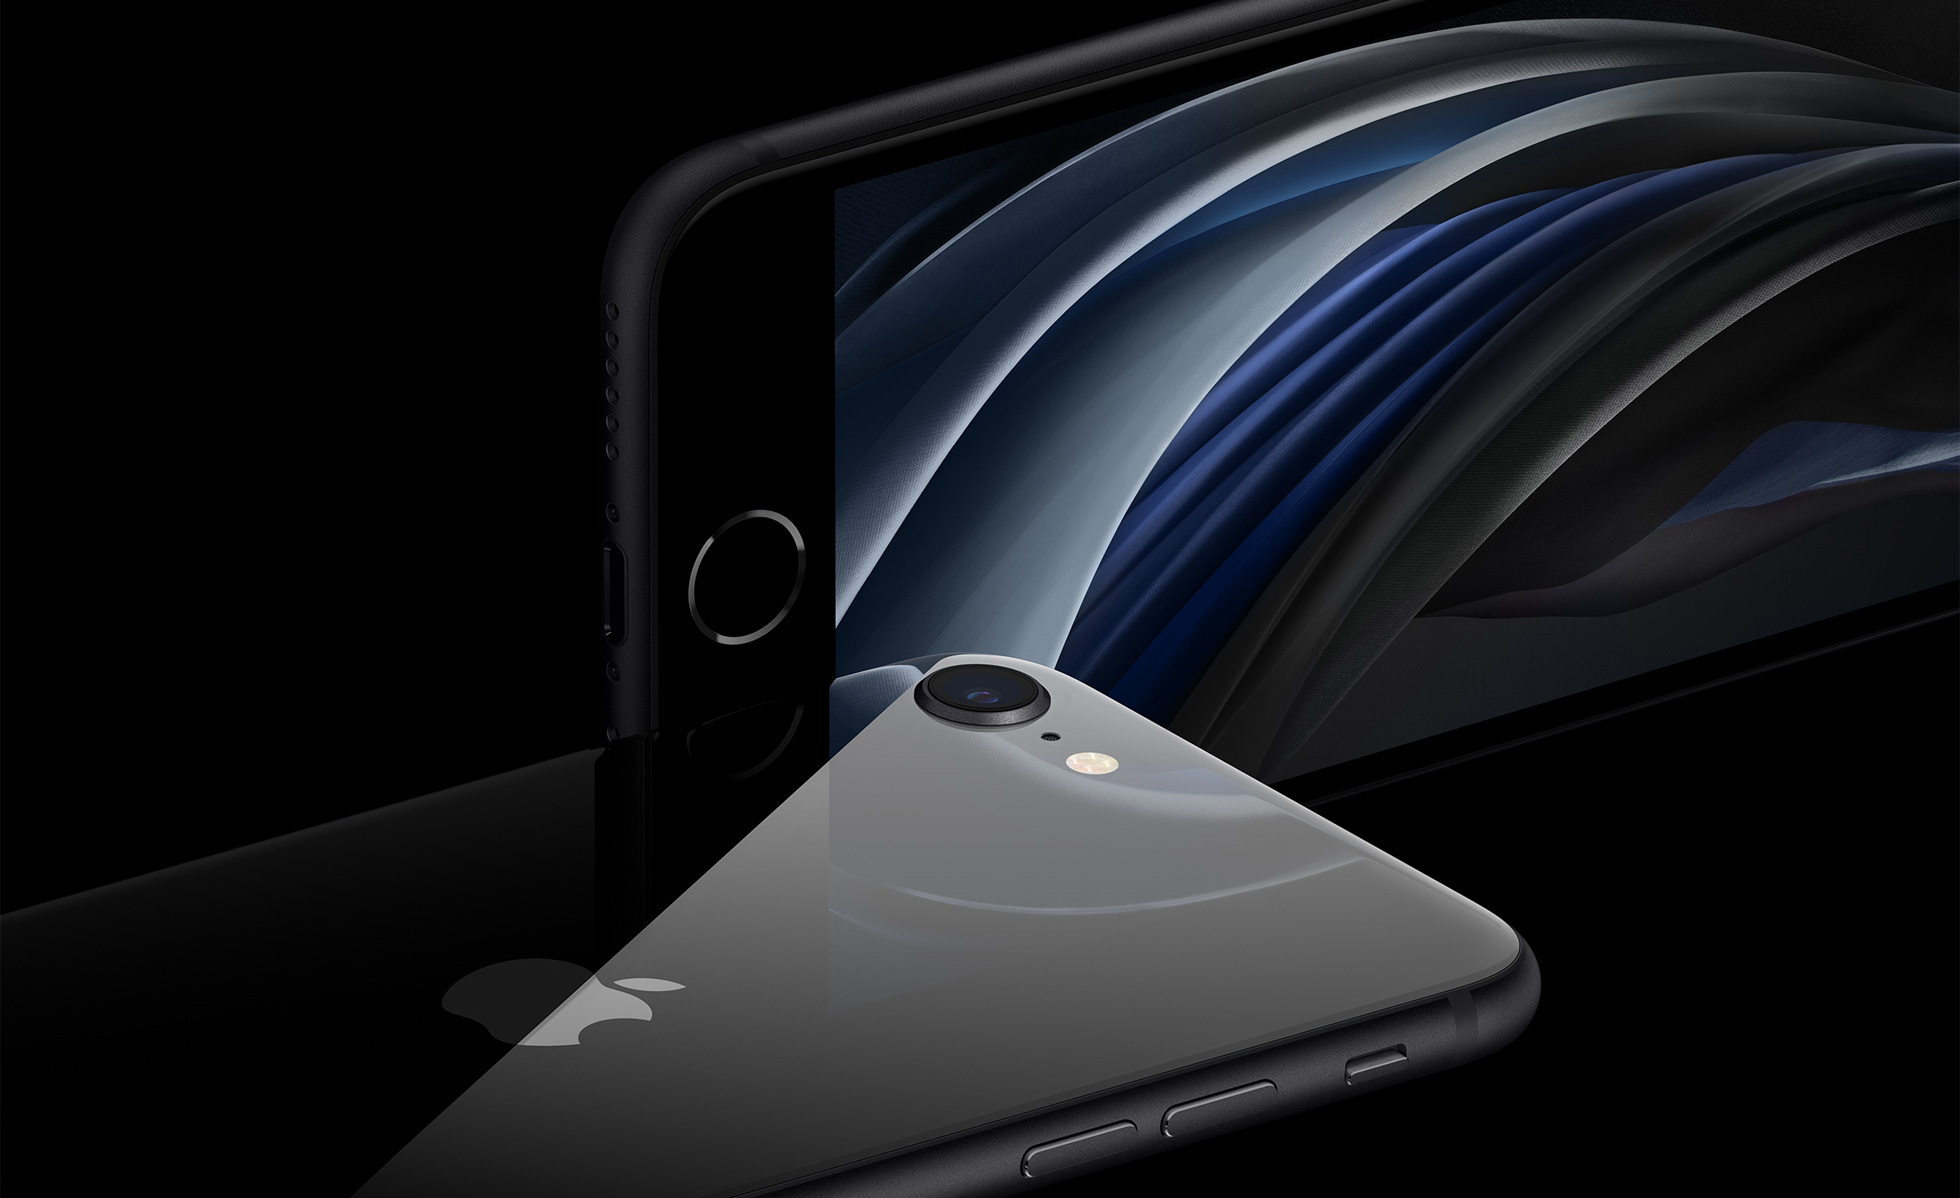 Apple_new-iphone-se-black-camera-and-touch-id_04152020_big.jpg.large_2x.jpg (1960×1198)